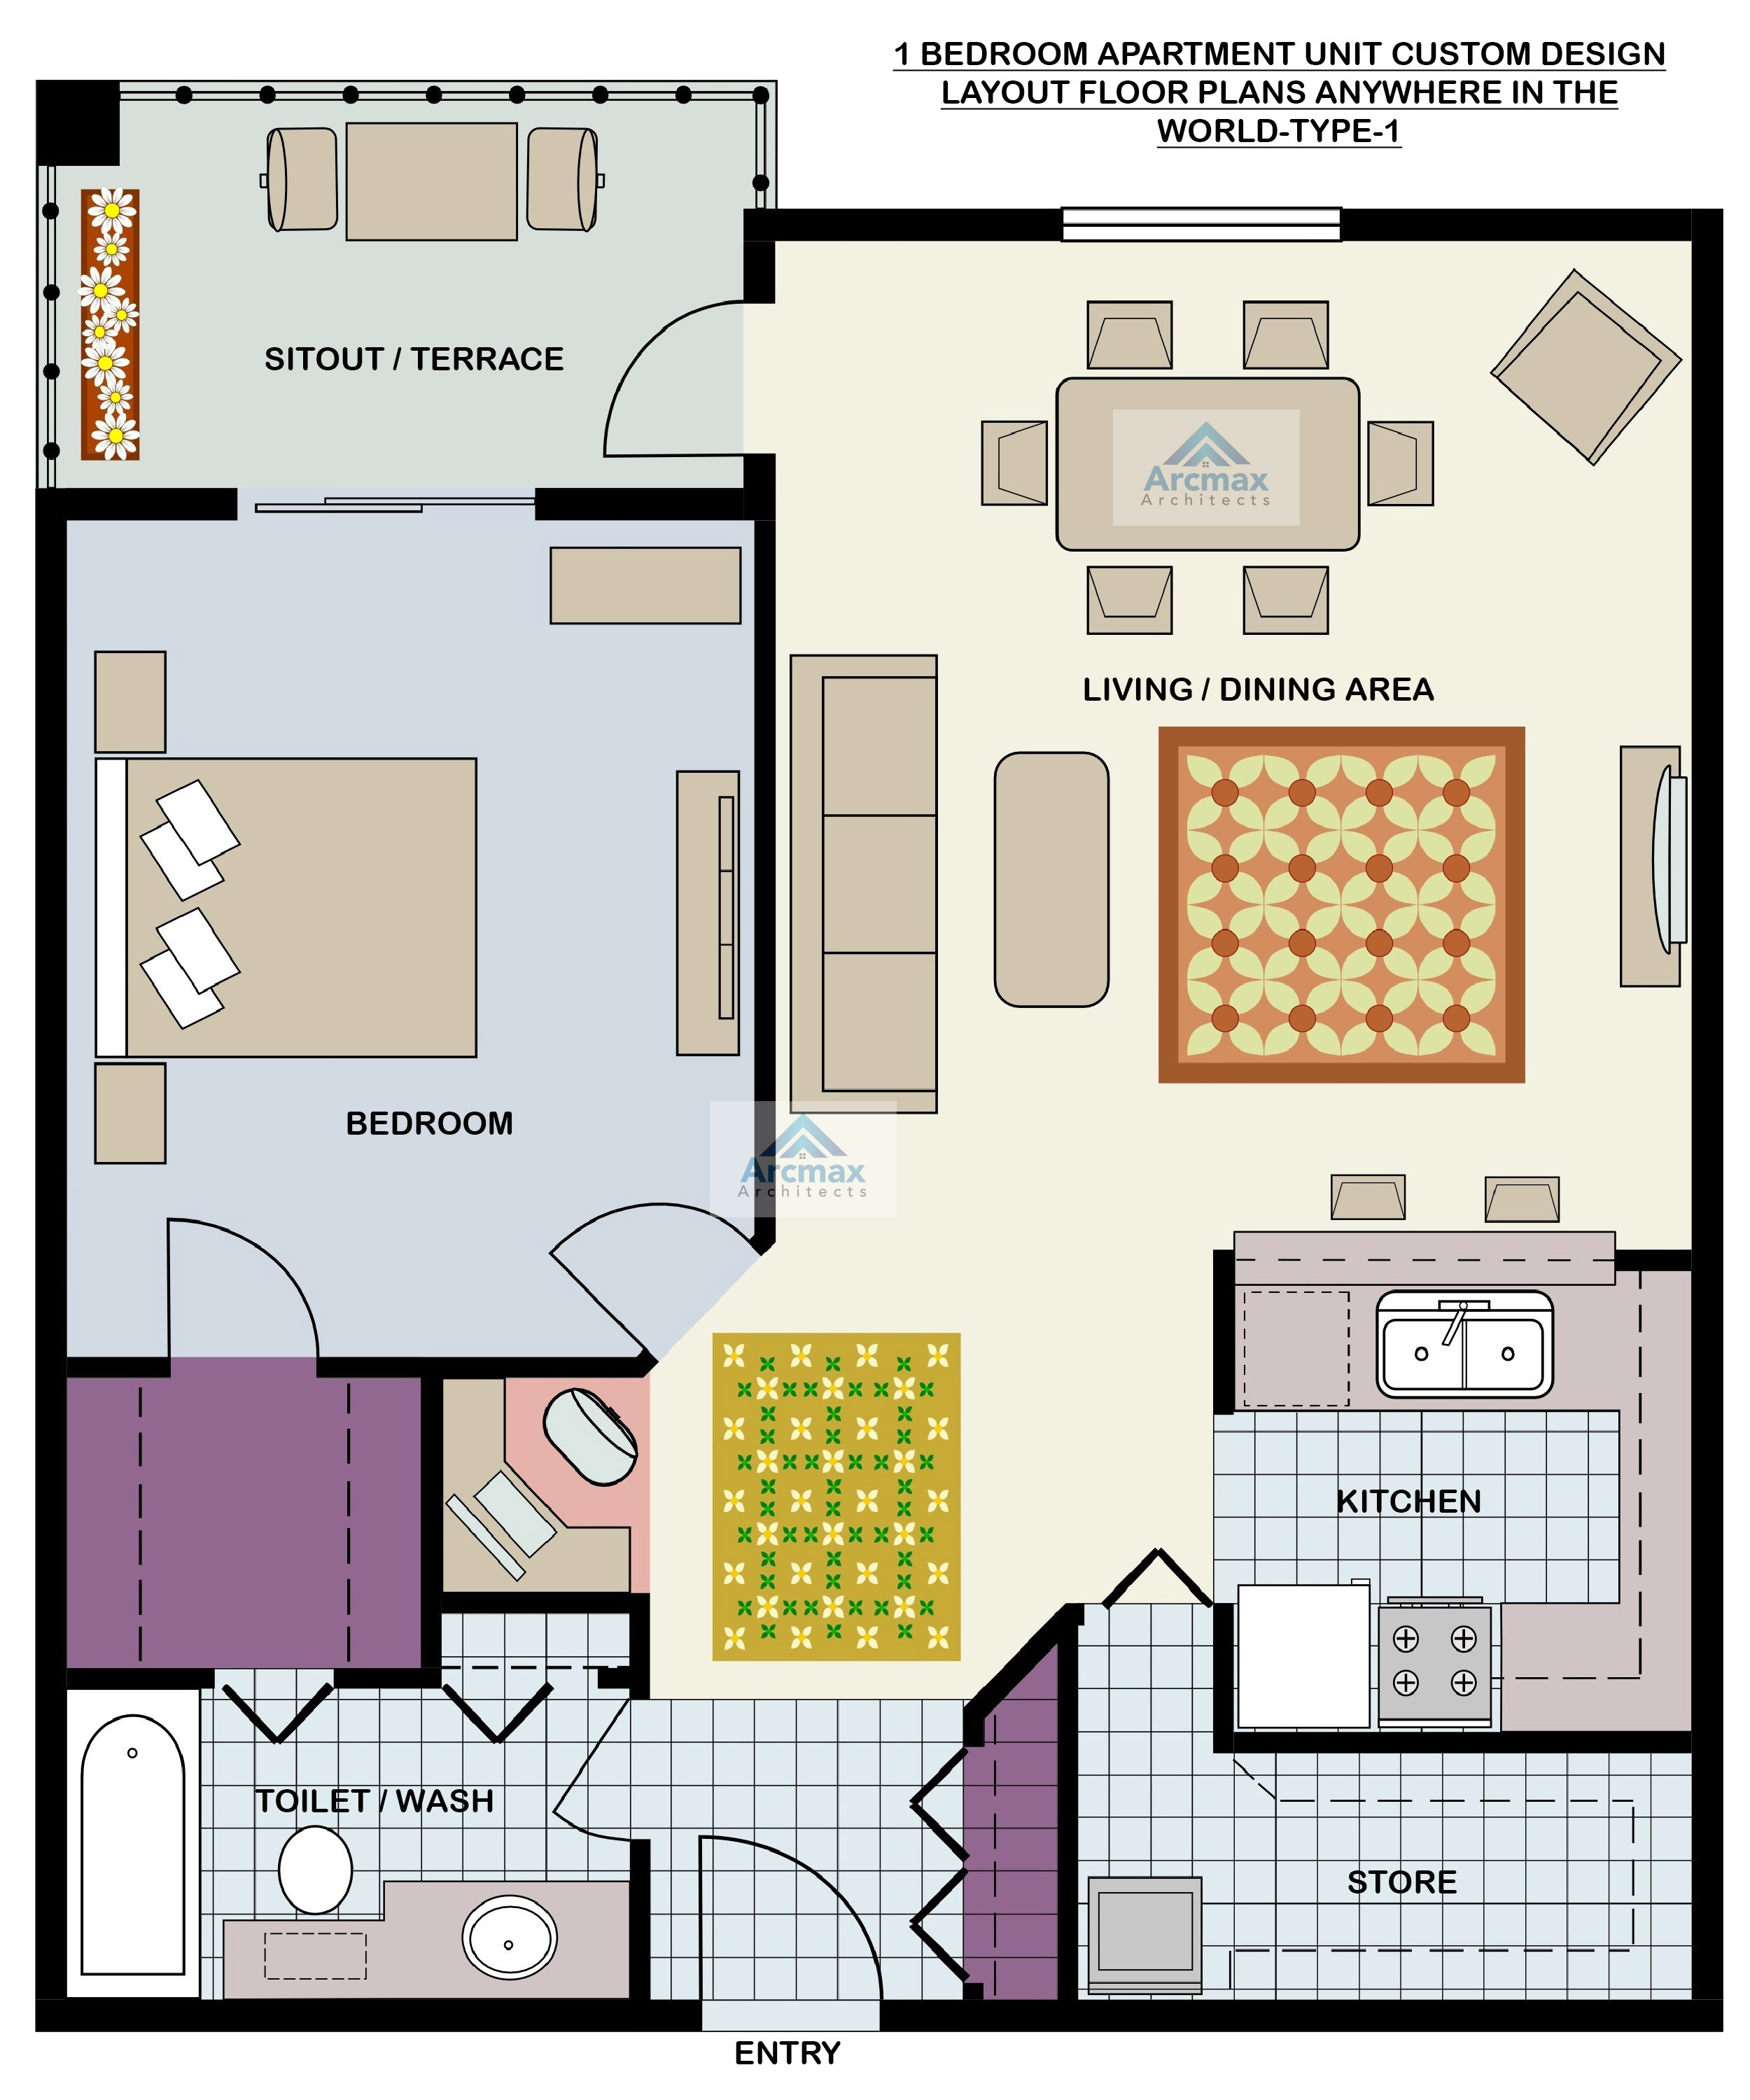 1 bedroom apartment unit custom design layout floor plans anywhere in the world type 1